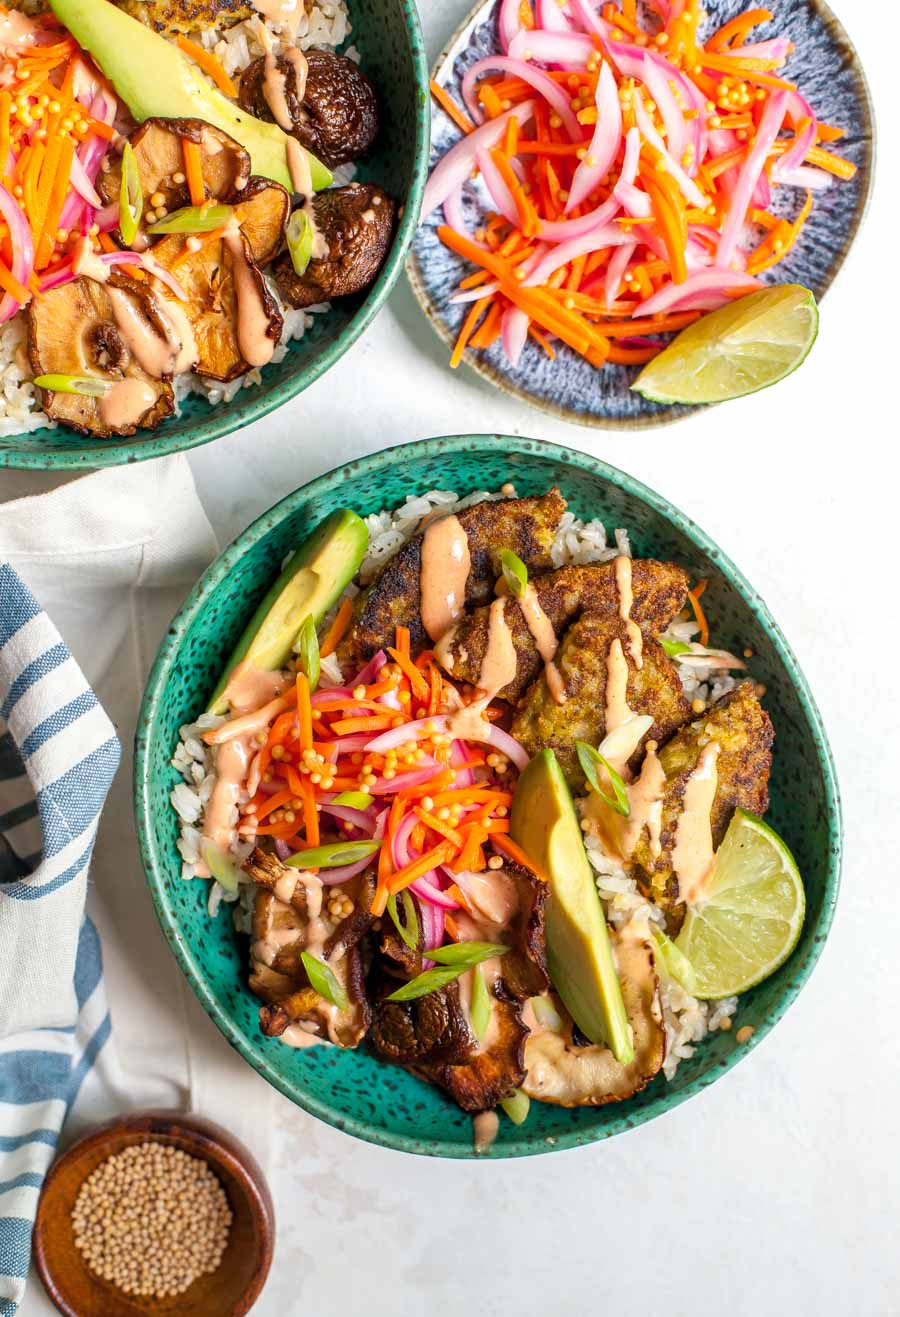 Korean Veggie Burger Bowls with Yum Yum Sauce